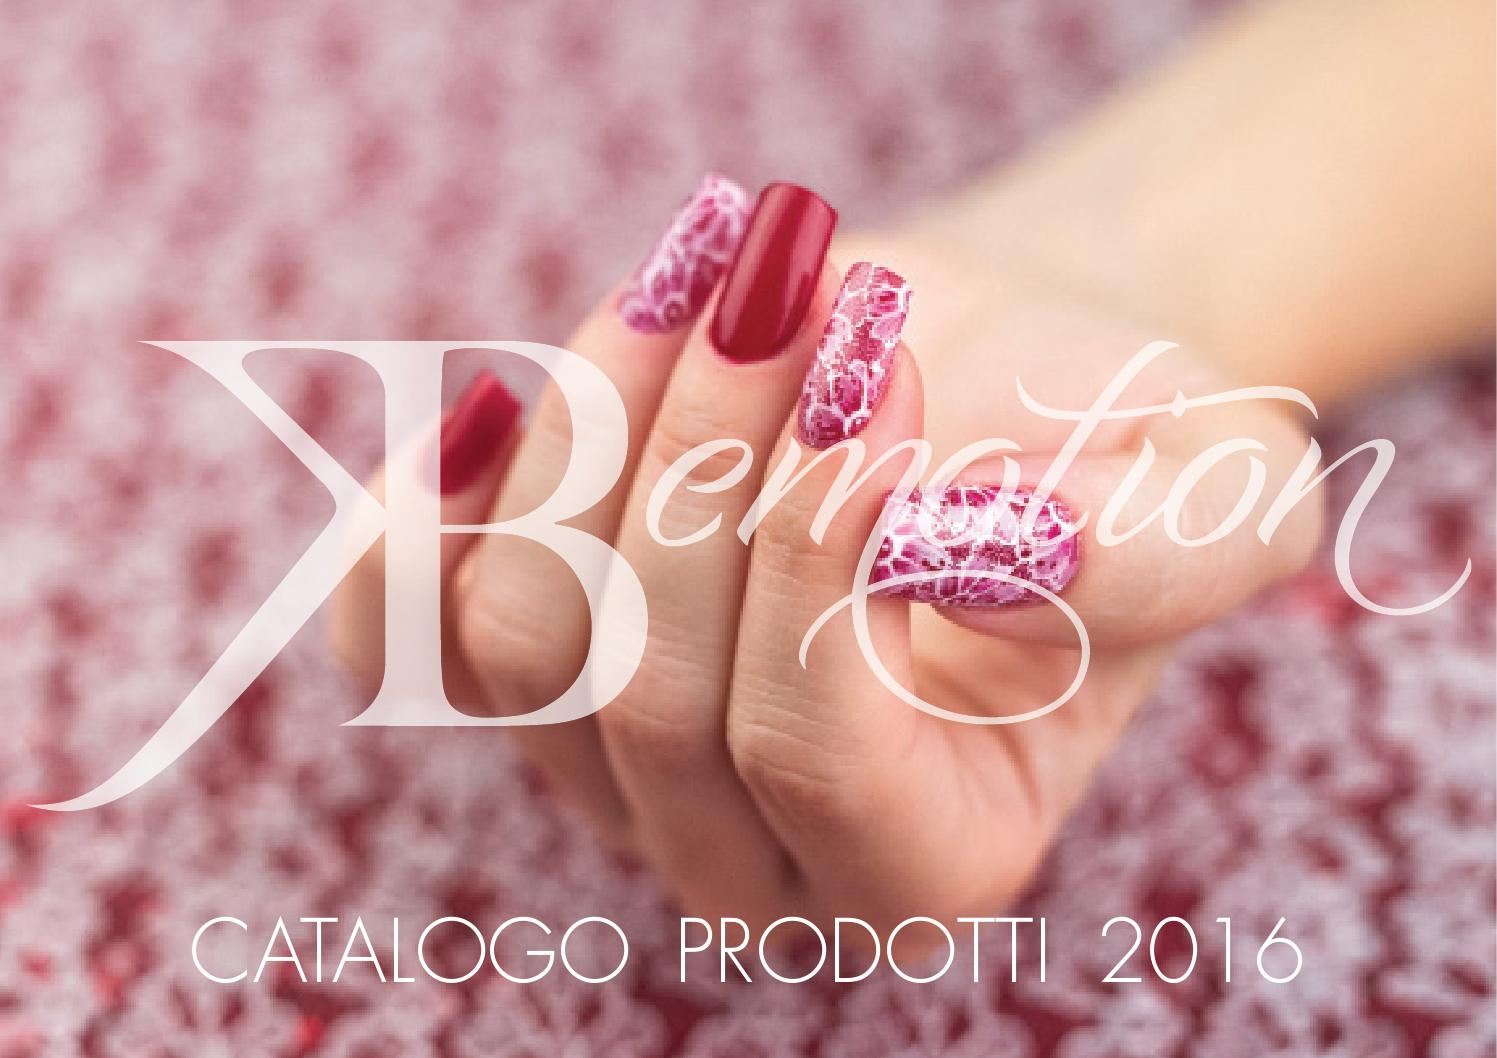 Kb catalogo prodotti 2016 by kb school issuu for Catalogo deco 2016